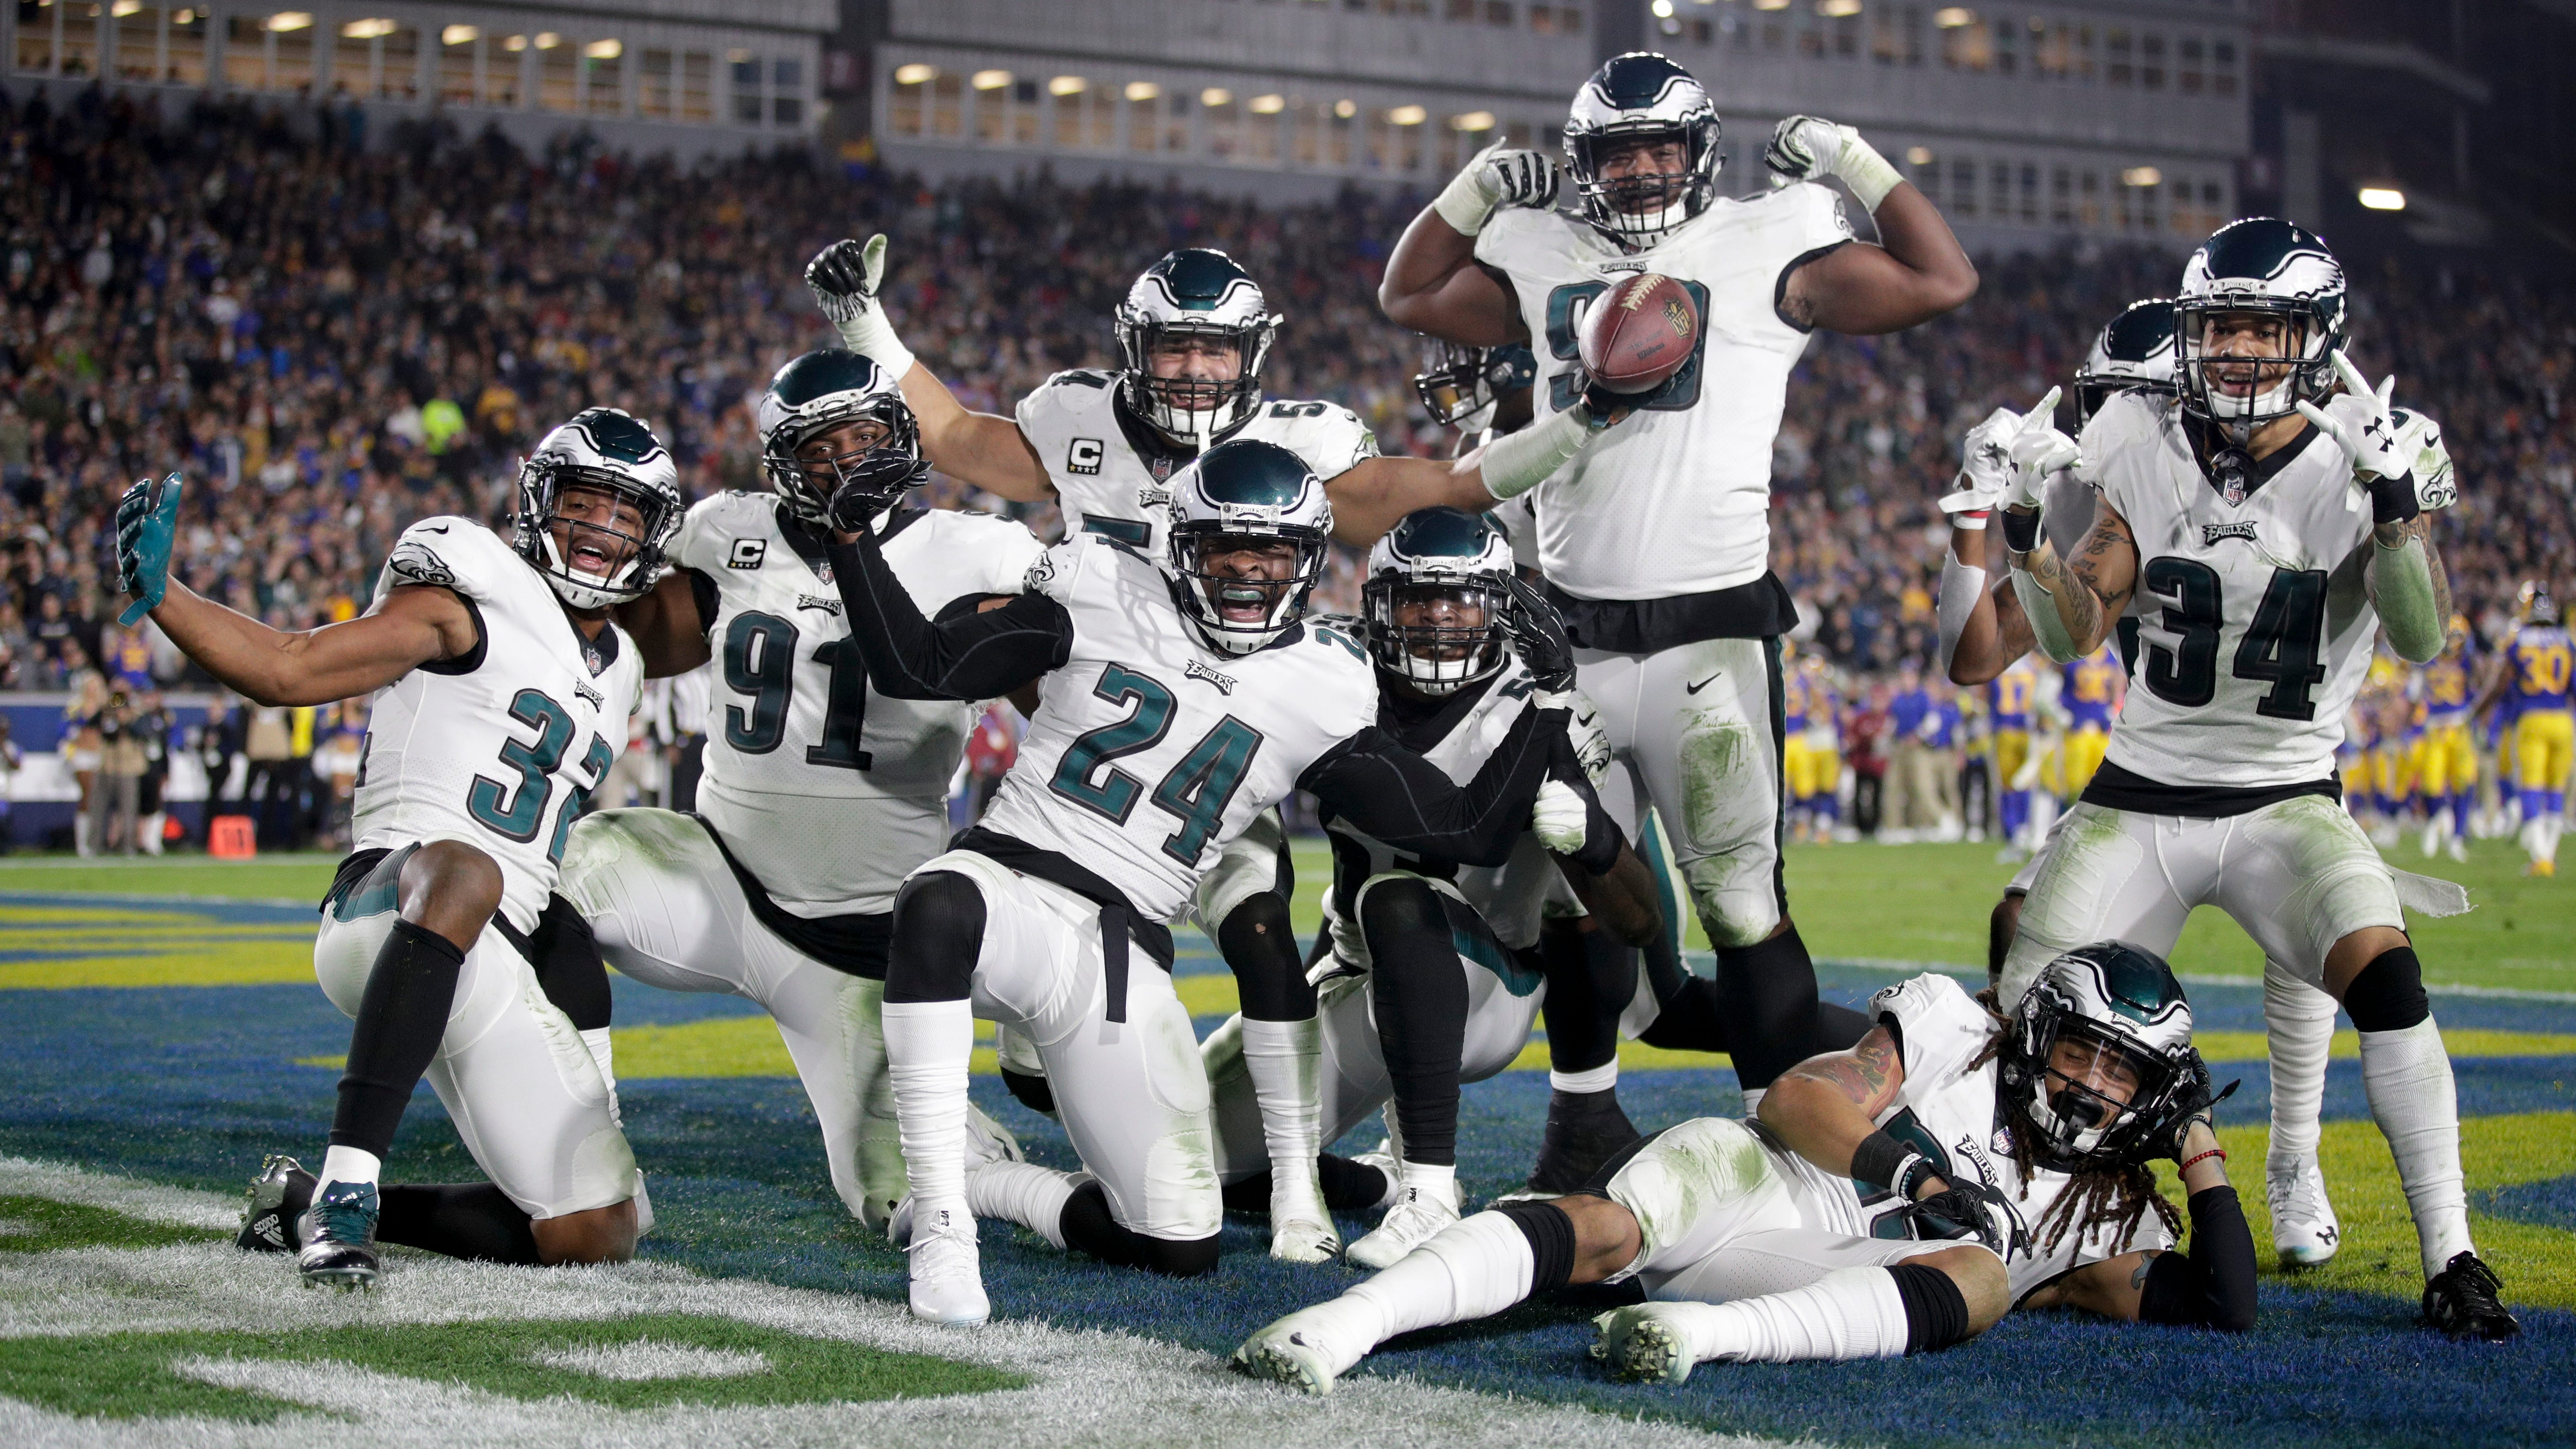 Philadelphia Eagles free safety Corey Graham (24) celebrates with teammates after recovering a fumble by Los Angeles Rams quarterback Jared Goff sduring the second half in an NFL football game Sunday, Dec. 16, 2018, in Los Angeles. (AP Photo/Jae C. Hong)